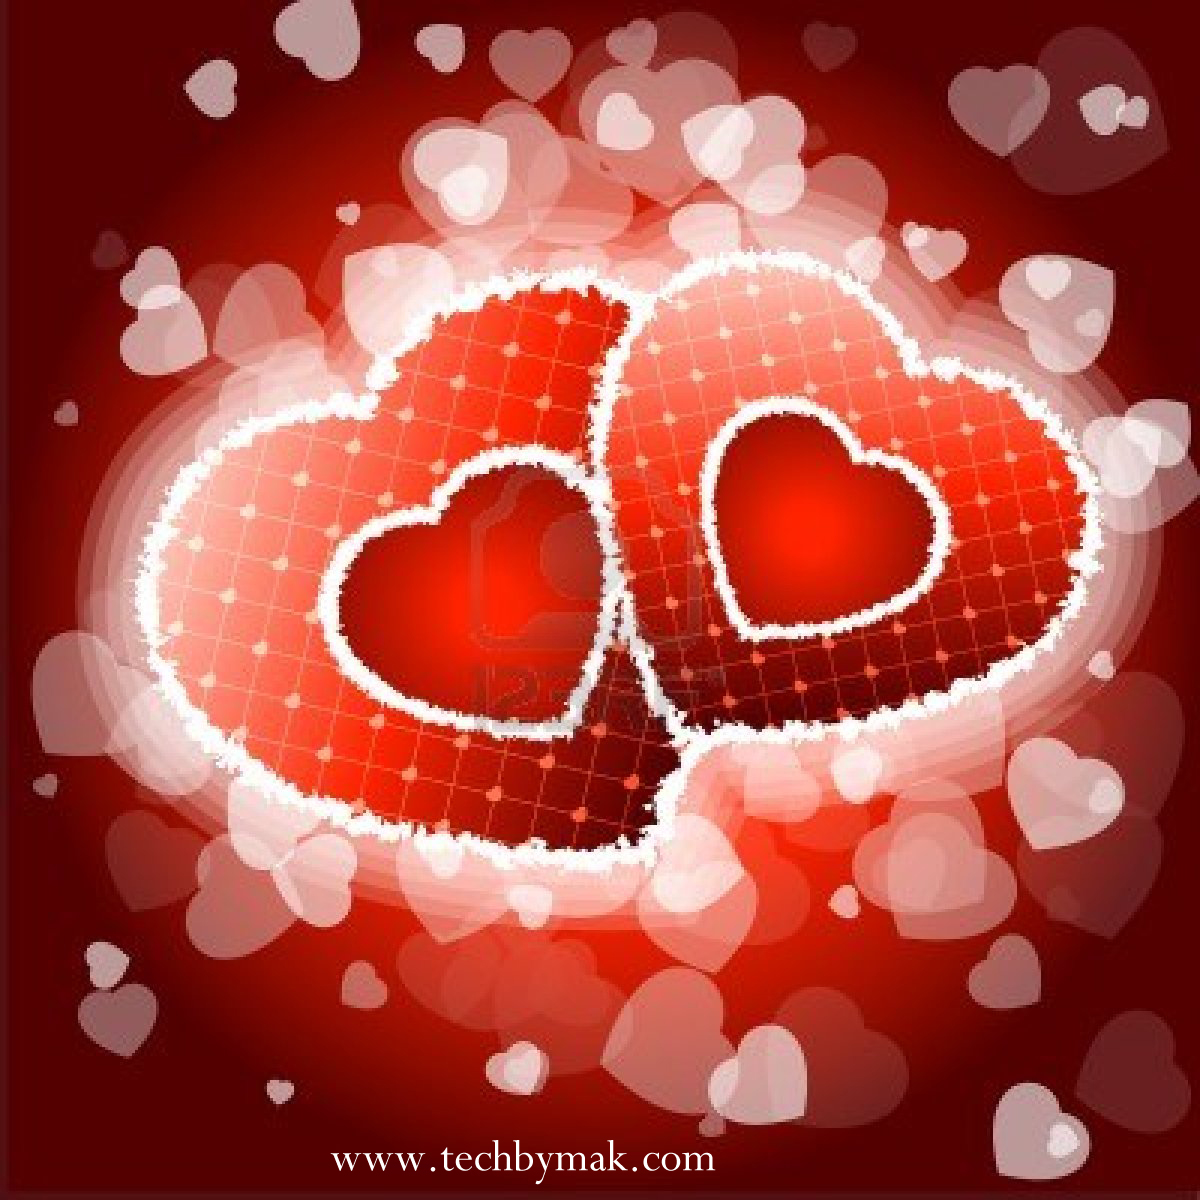 Valentines day Hearts Hd wallpapers Pictures Photos 2014 1200x1200